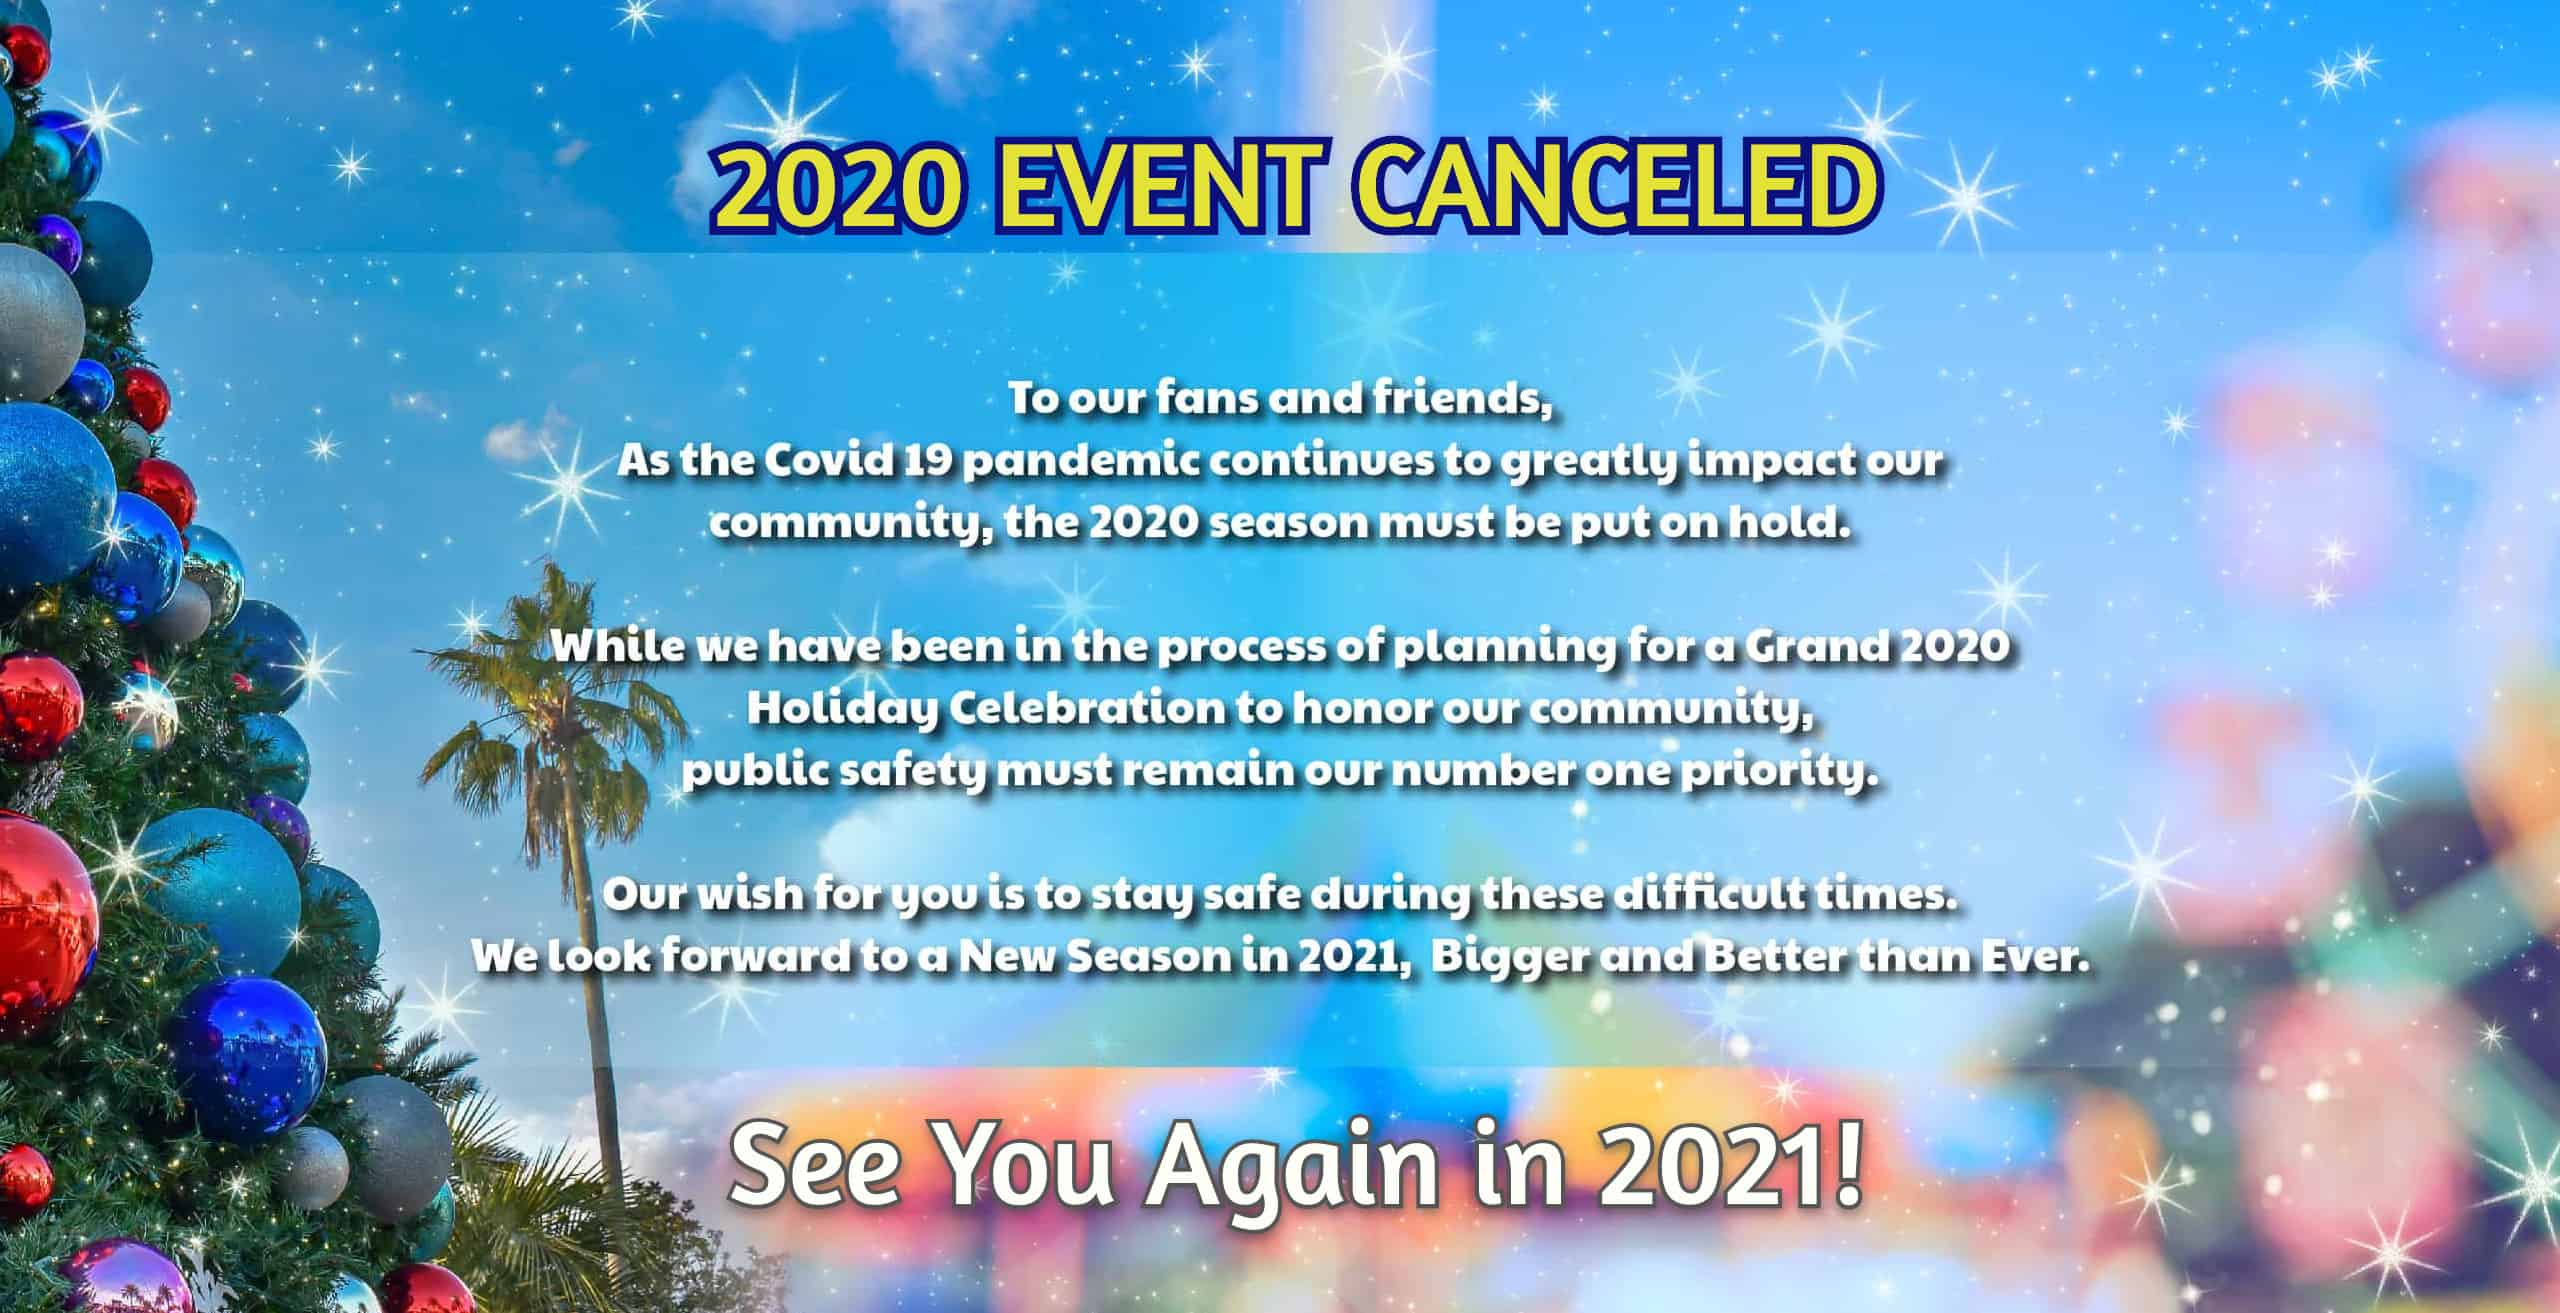 2020 Event Canceled